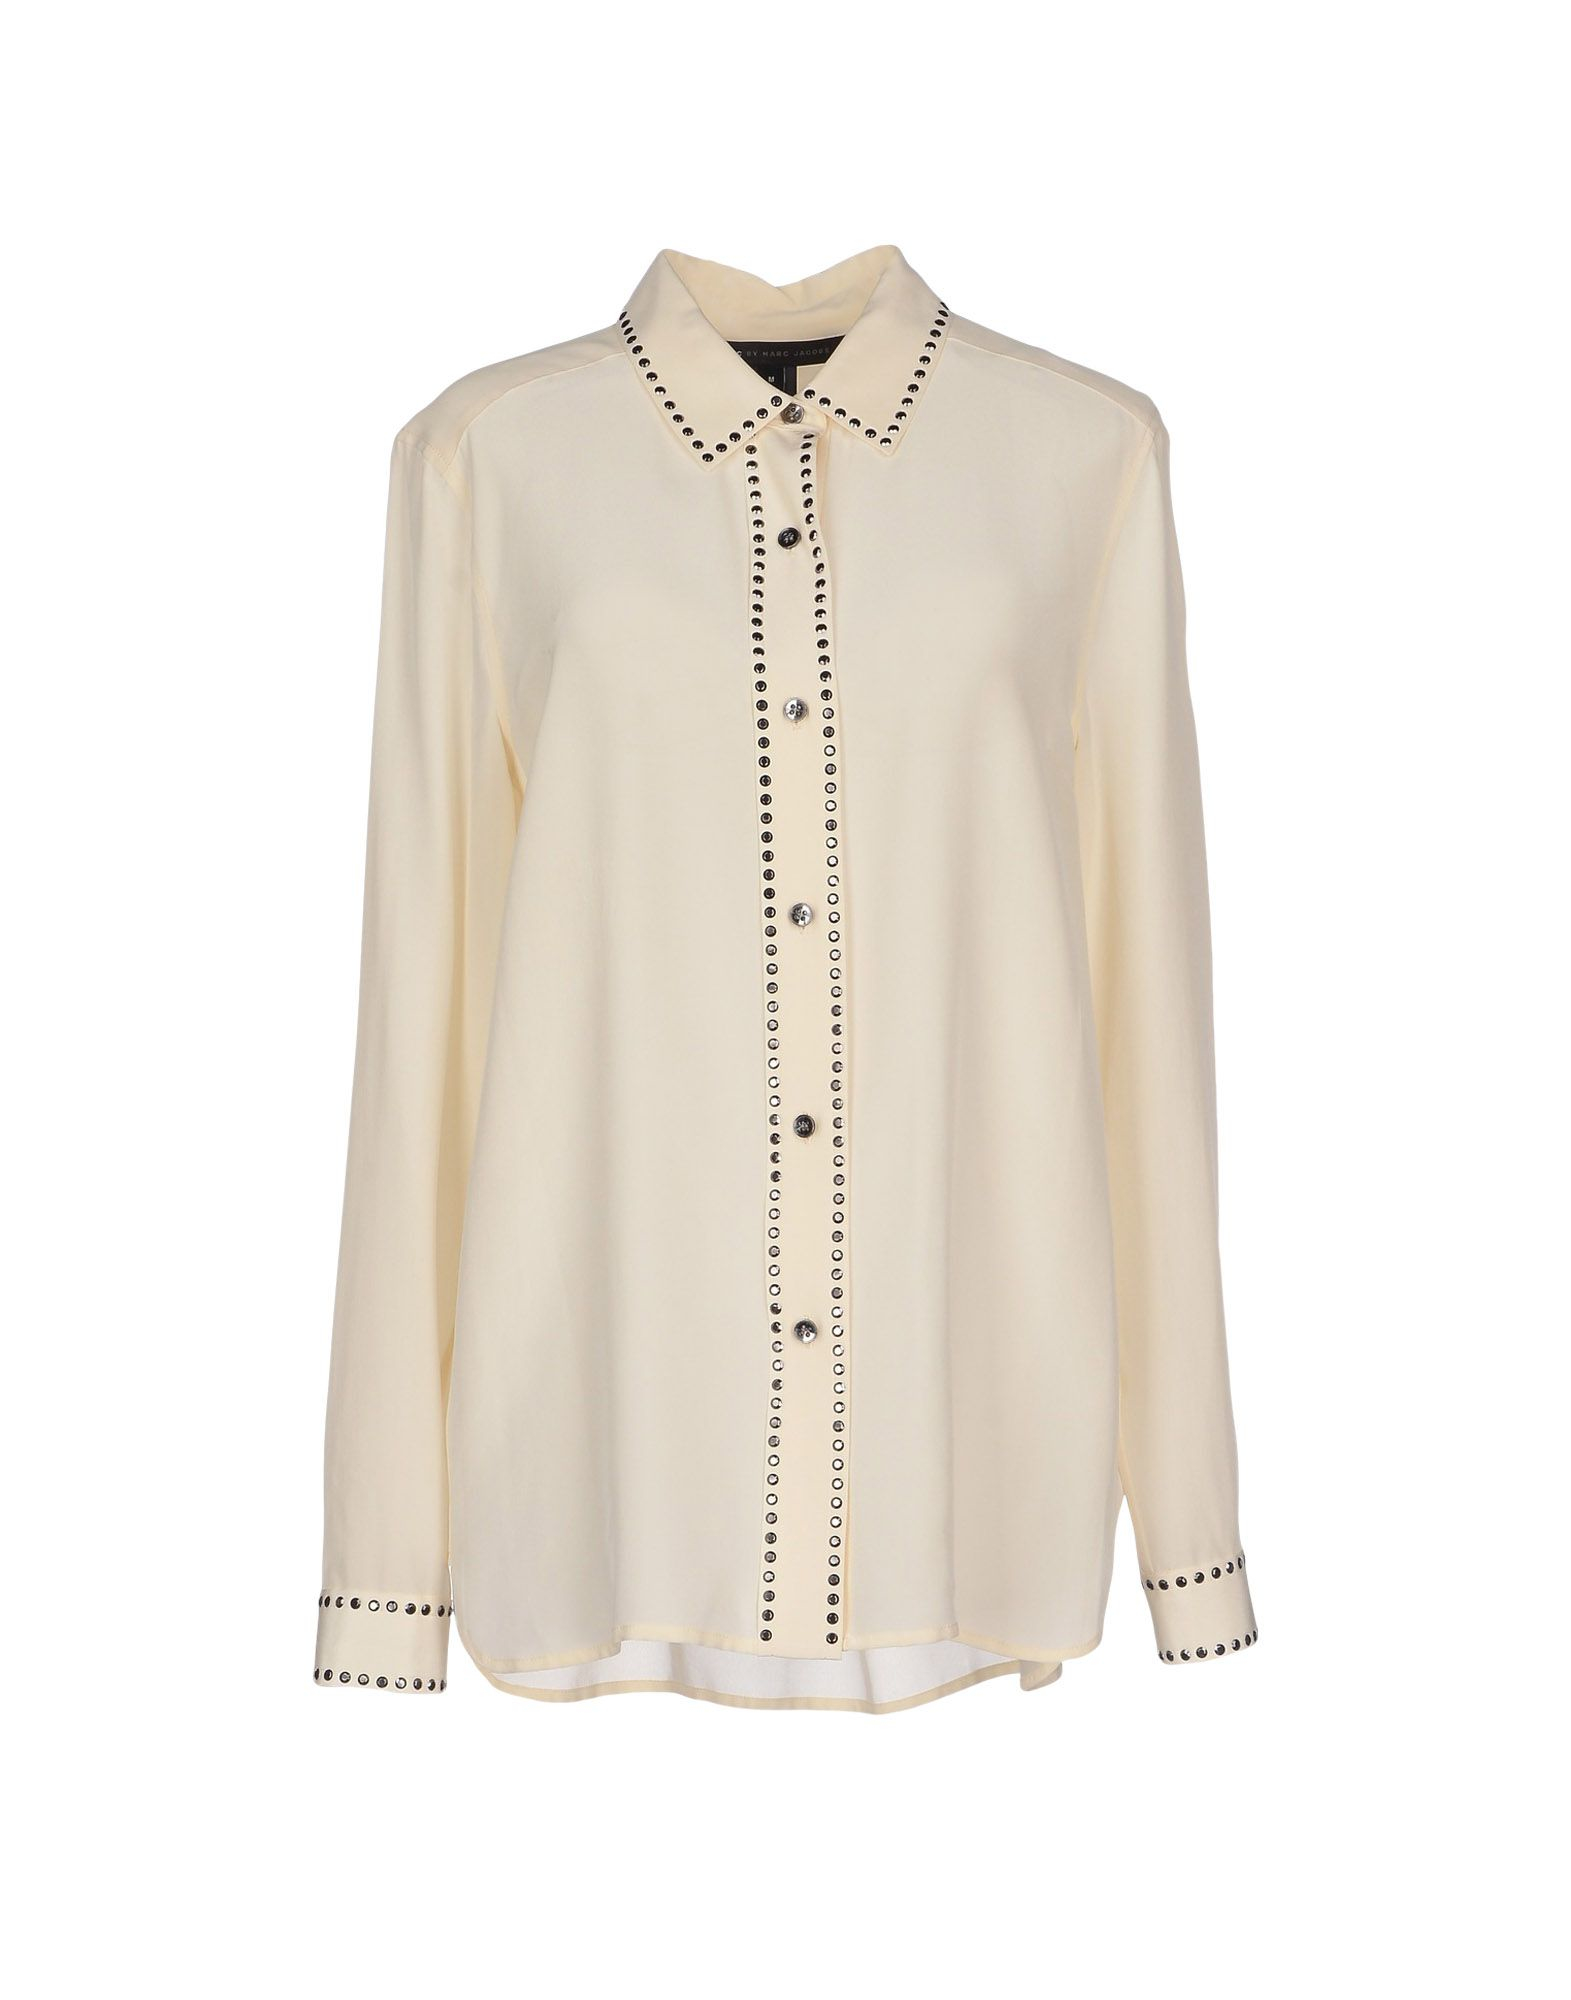 marc by marc jacobs shirt in natural lyst